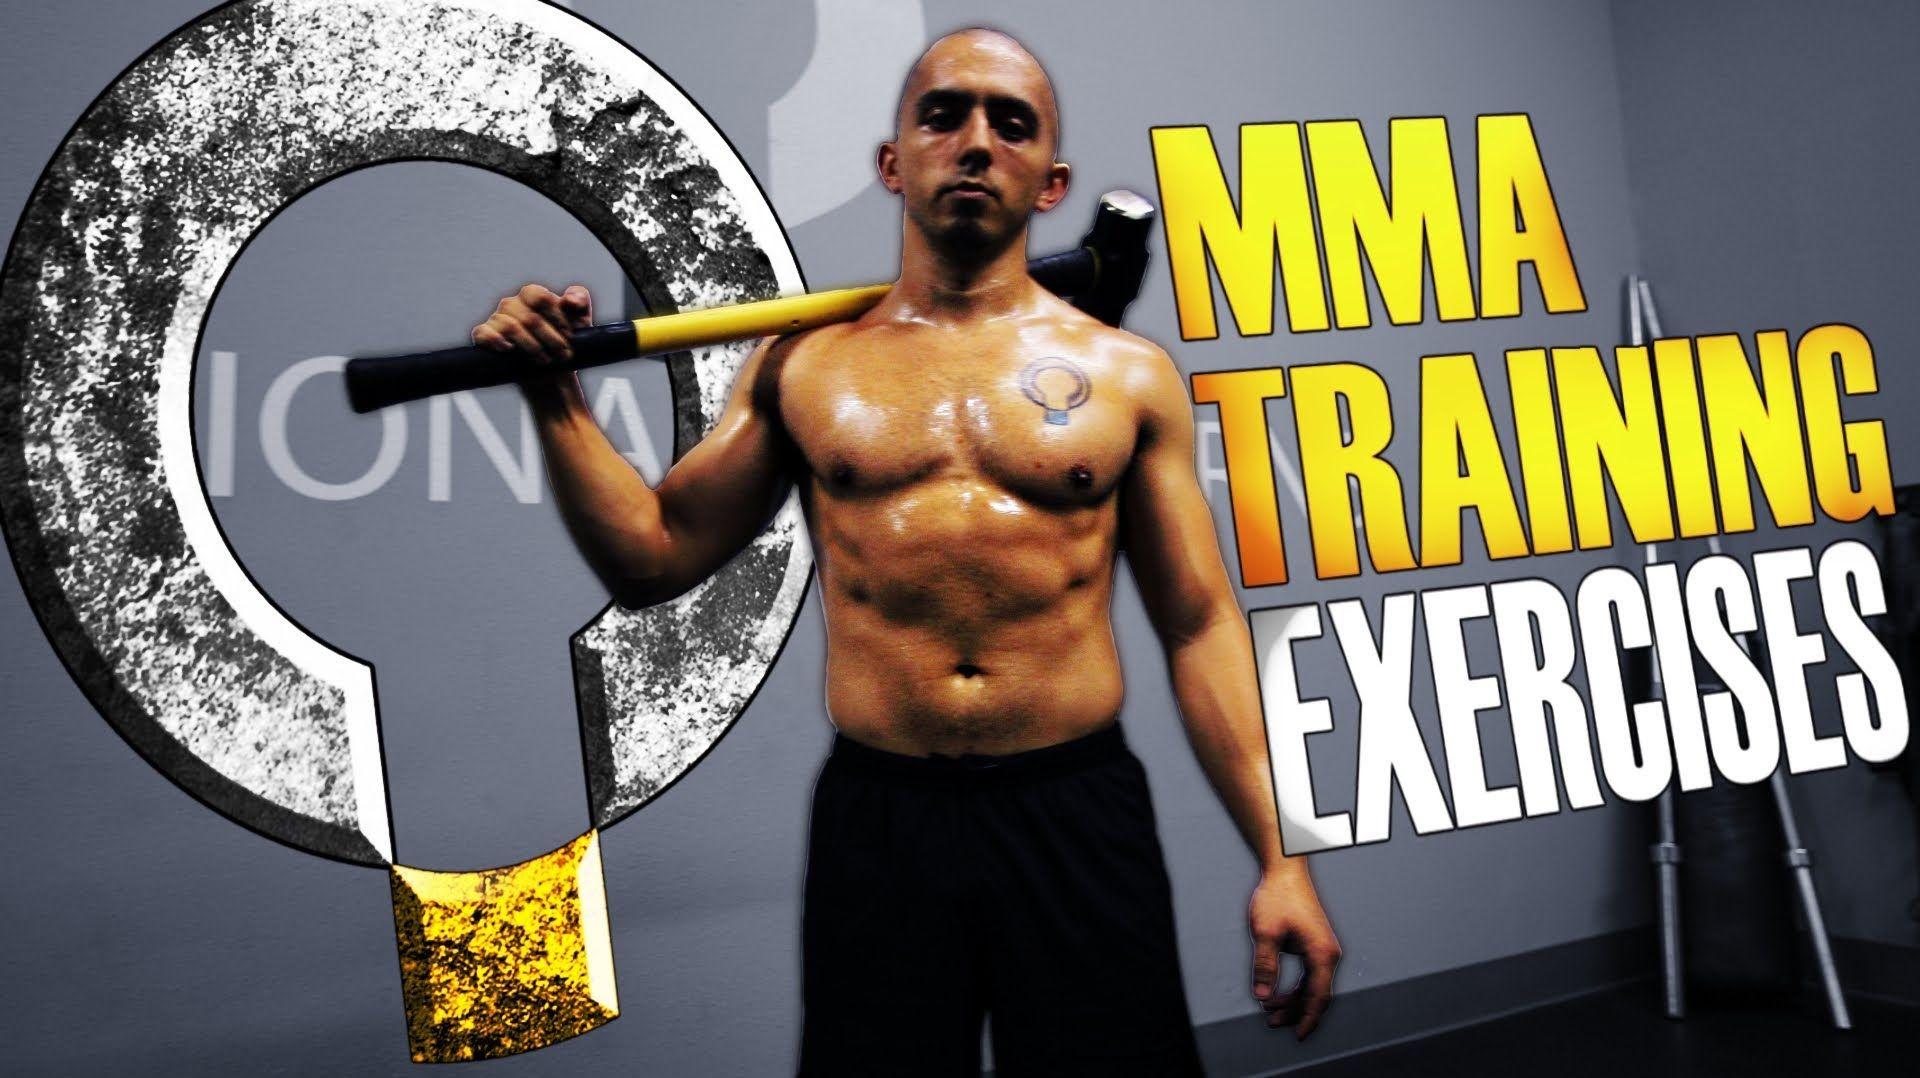 Extreme MMA Core Exercises with the Sledgehammer and Tire